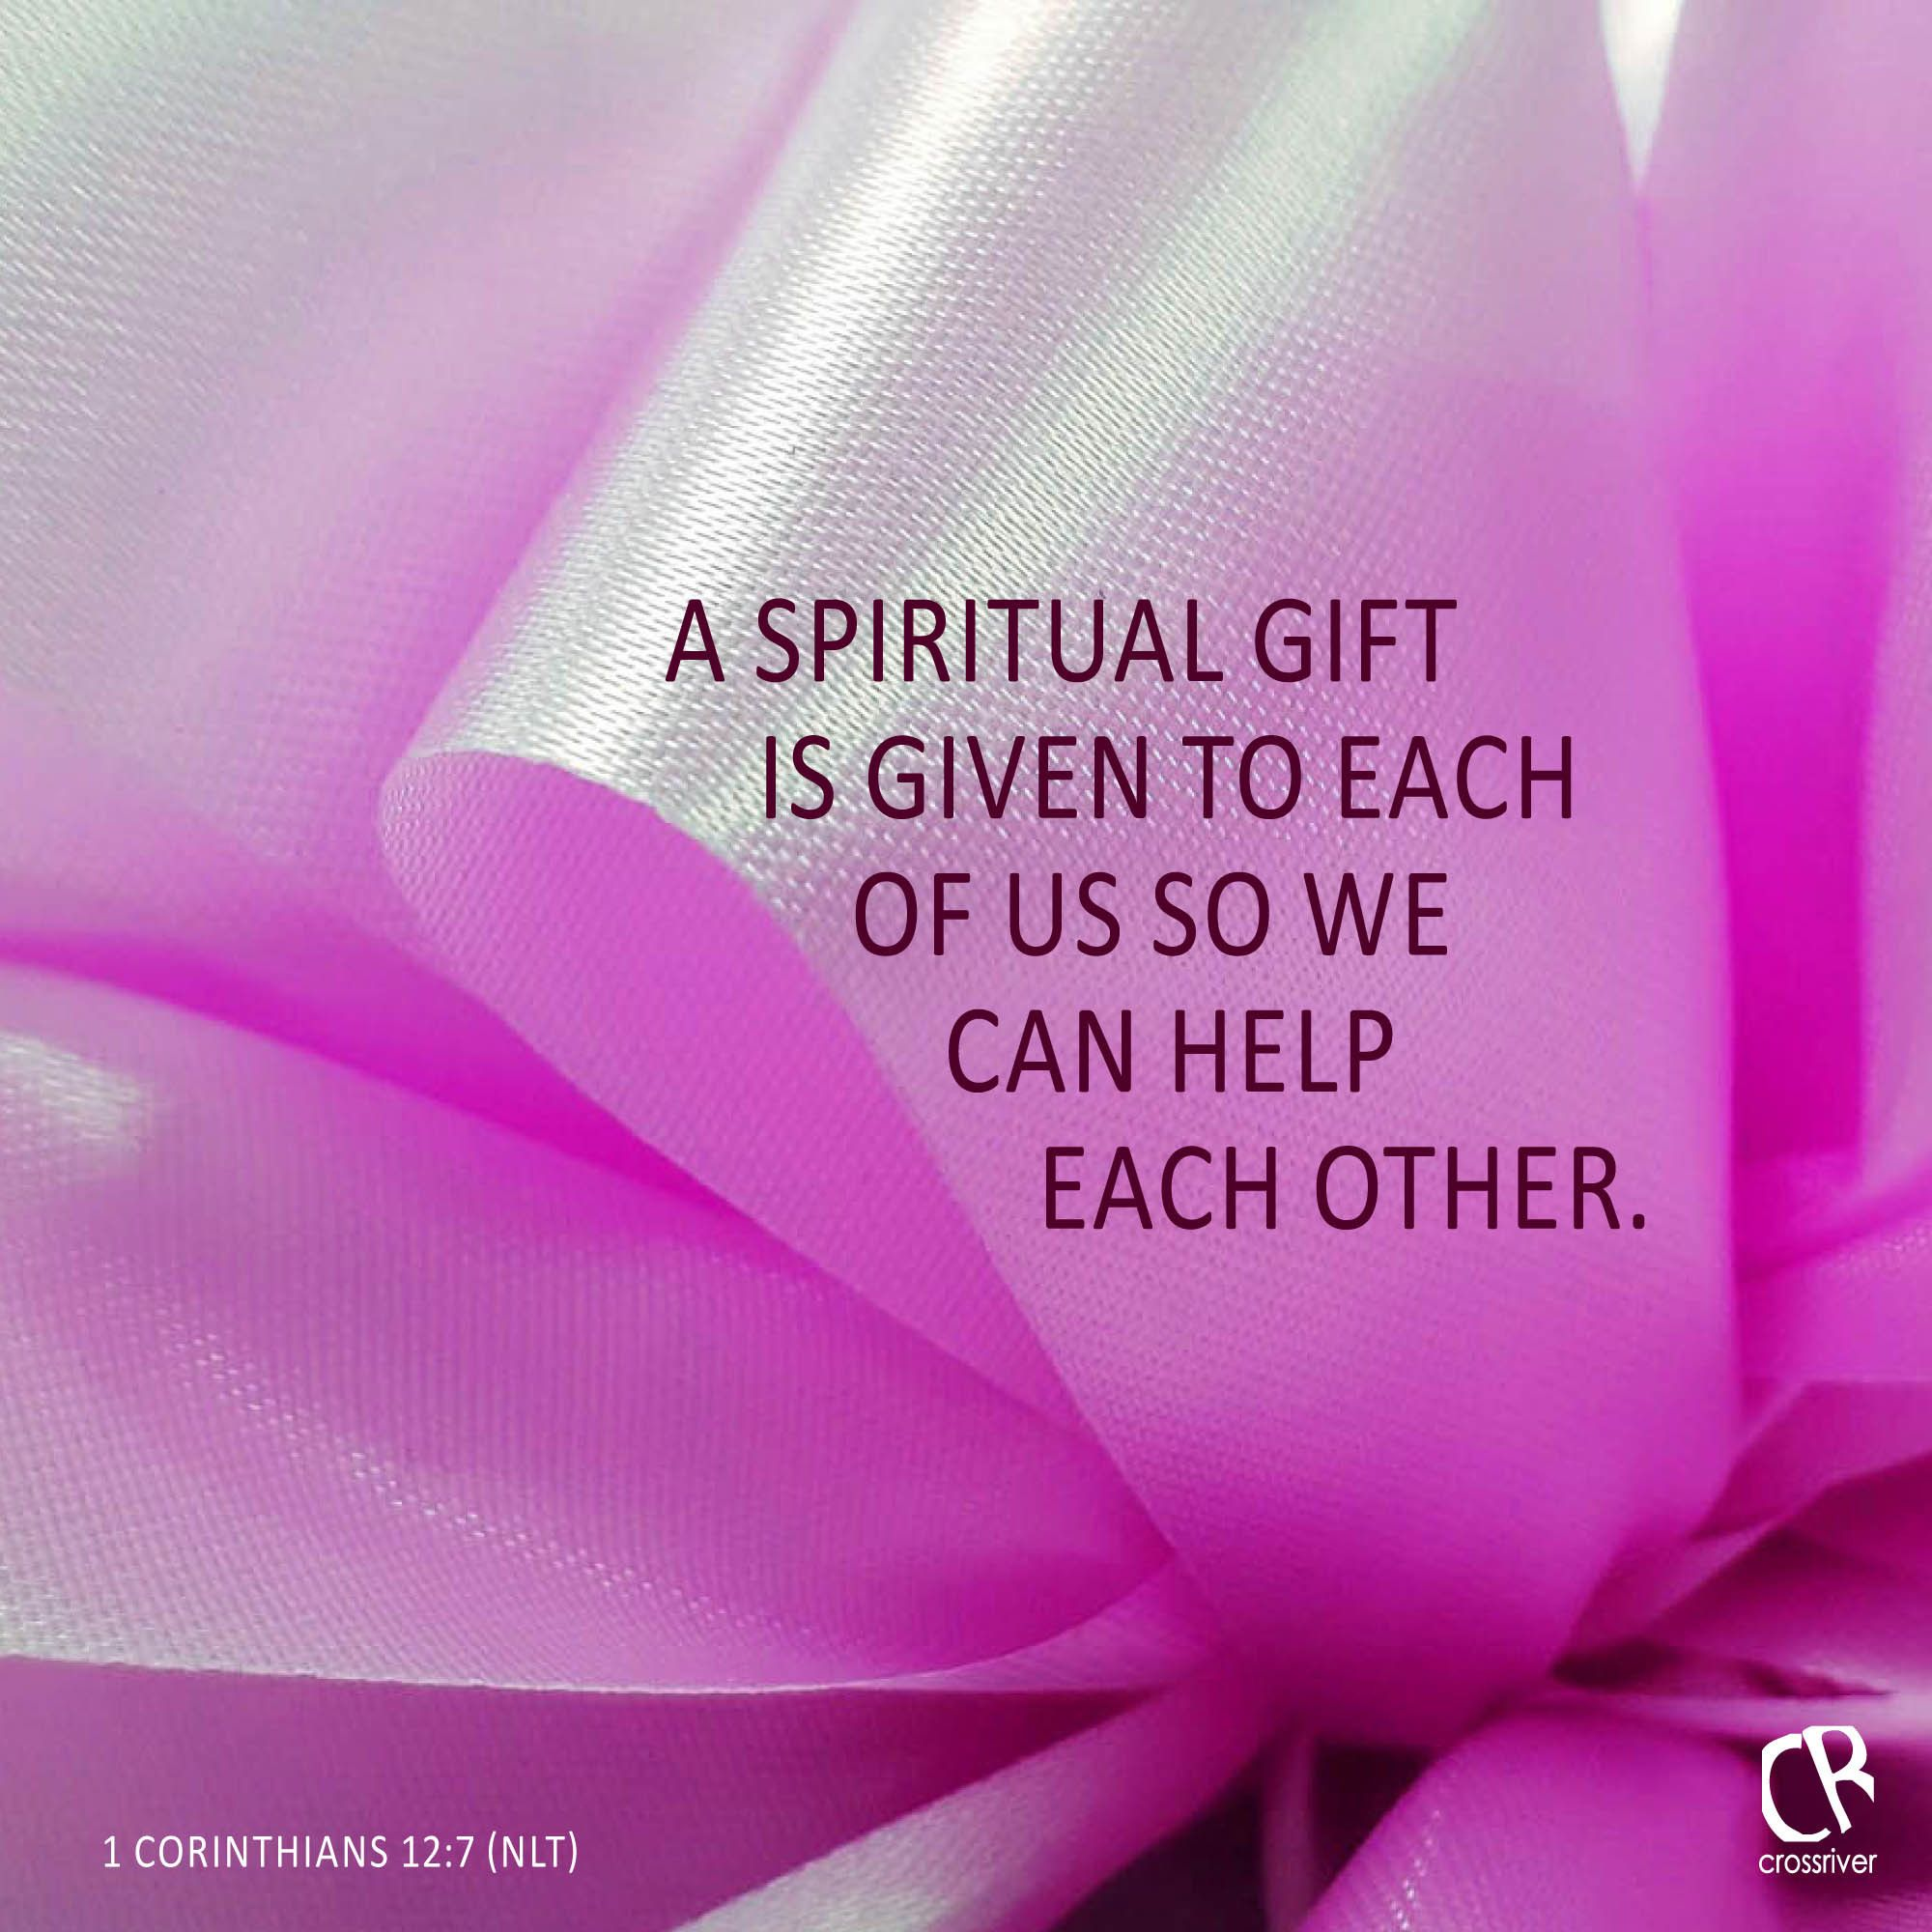 Home spiritual gifts christian quotes daily word